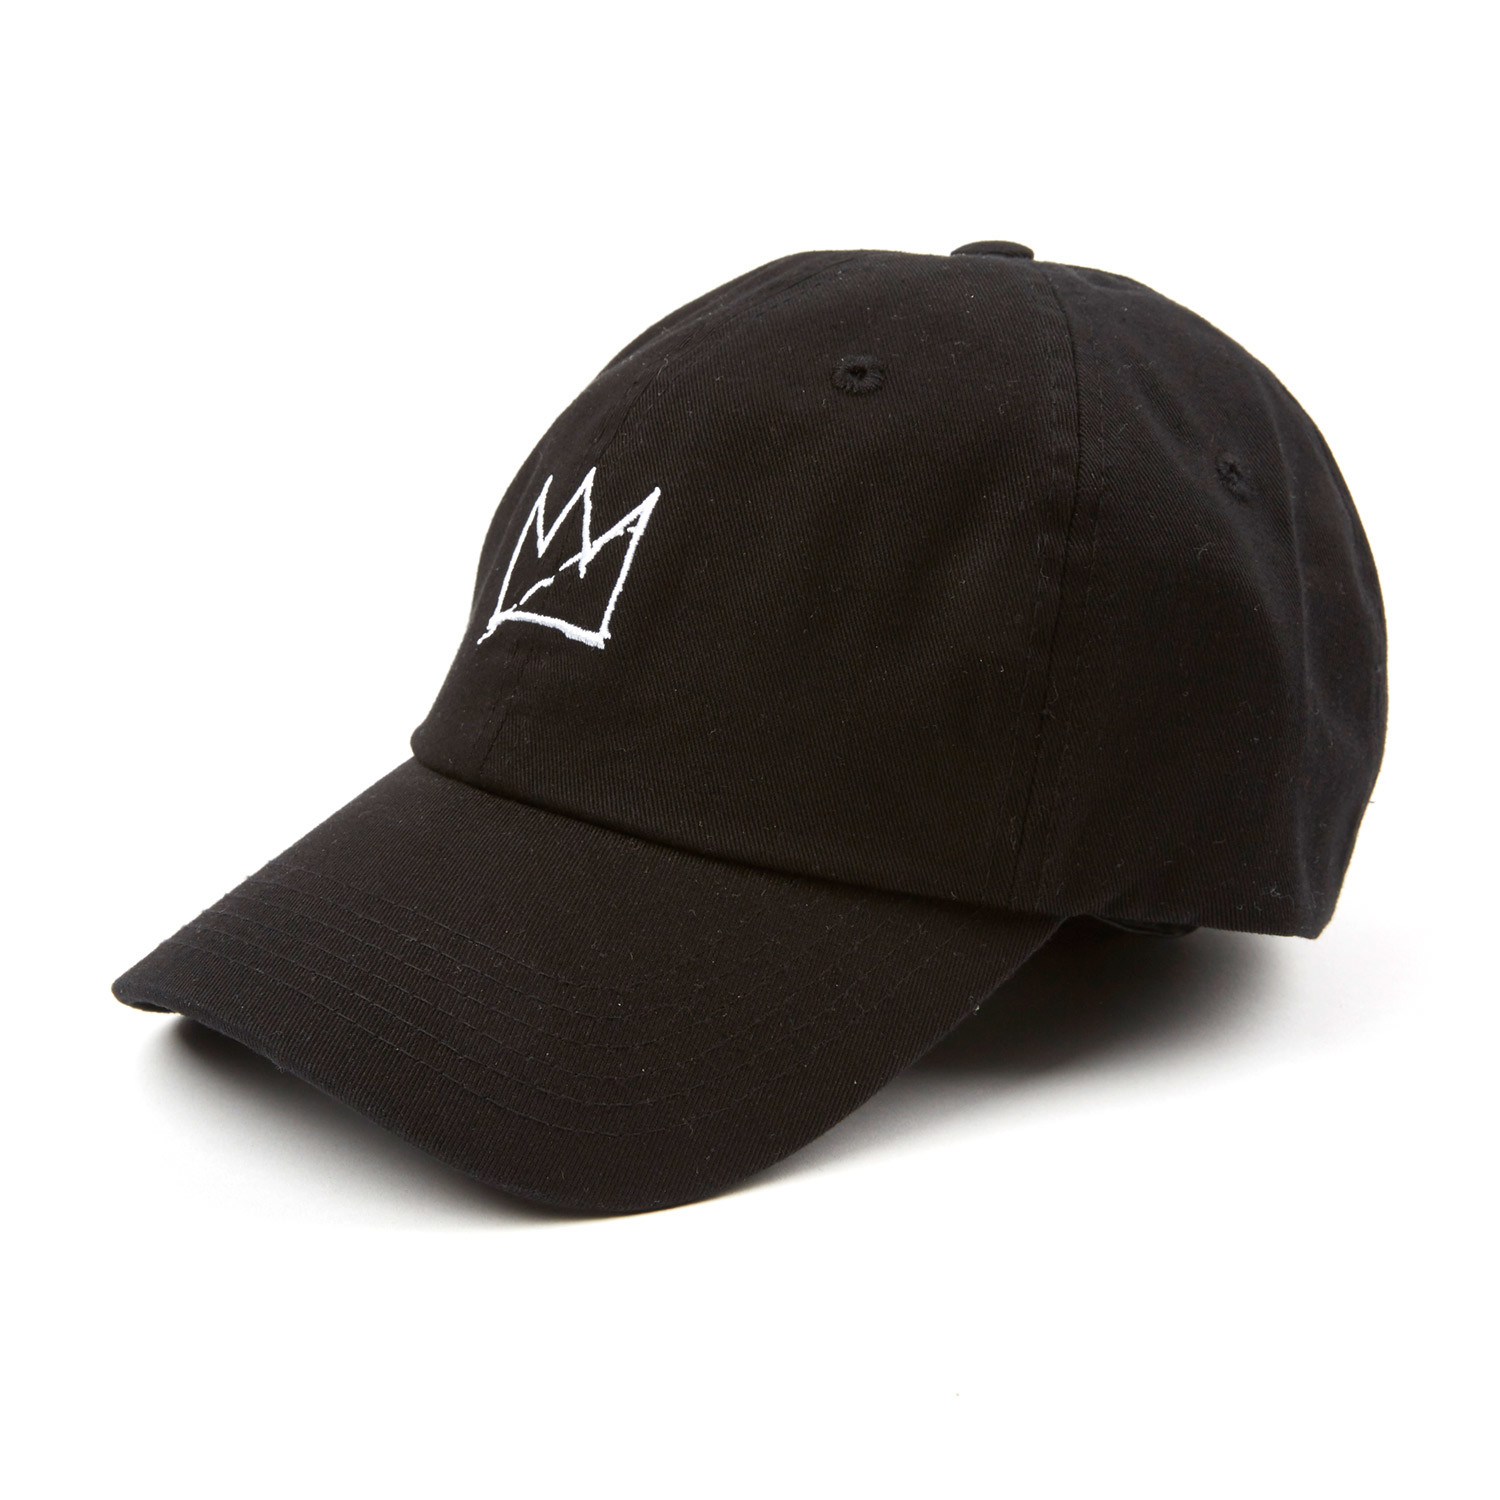 384804d10079ab6085ce30f9d4e45893_large?1476481360 crown dad hat black any memes touch of modern